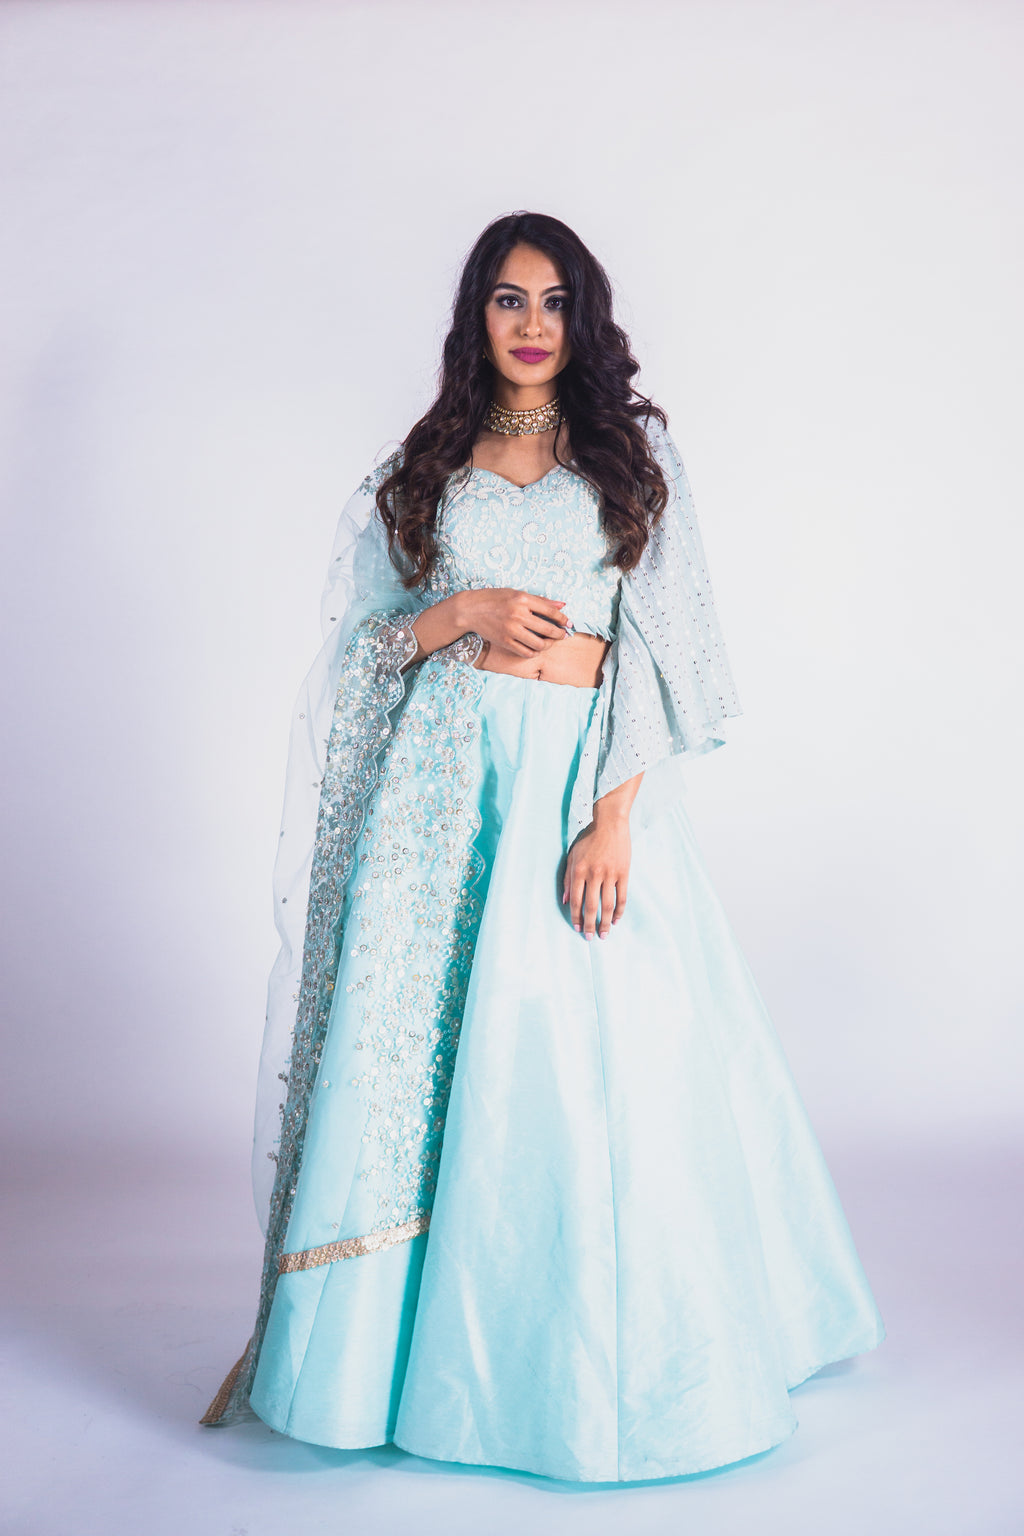 Sky Blue Raw Silk Lehenga With Bell Sleeves Lucknowi Blouse and Organza Dupatta - Shop Indian Clothes Online in USA at sushmapatel.us